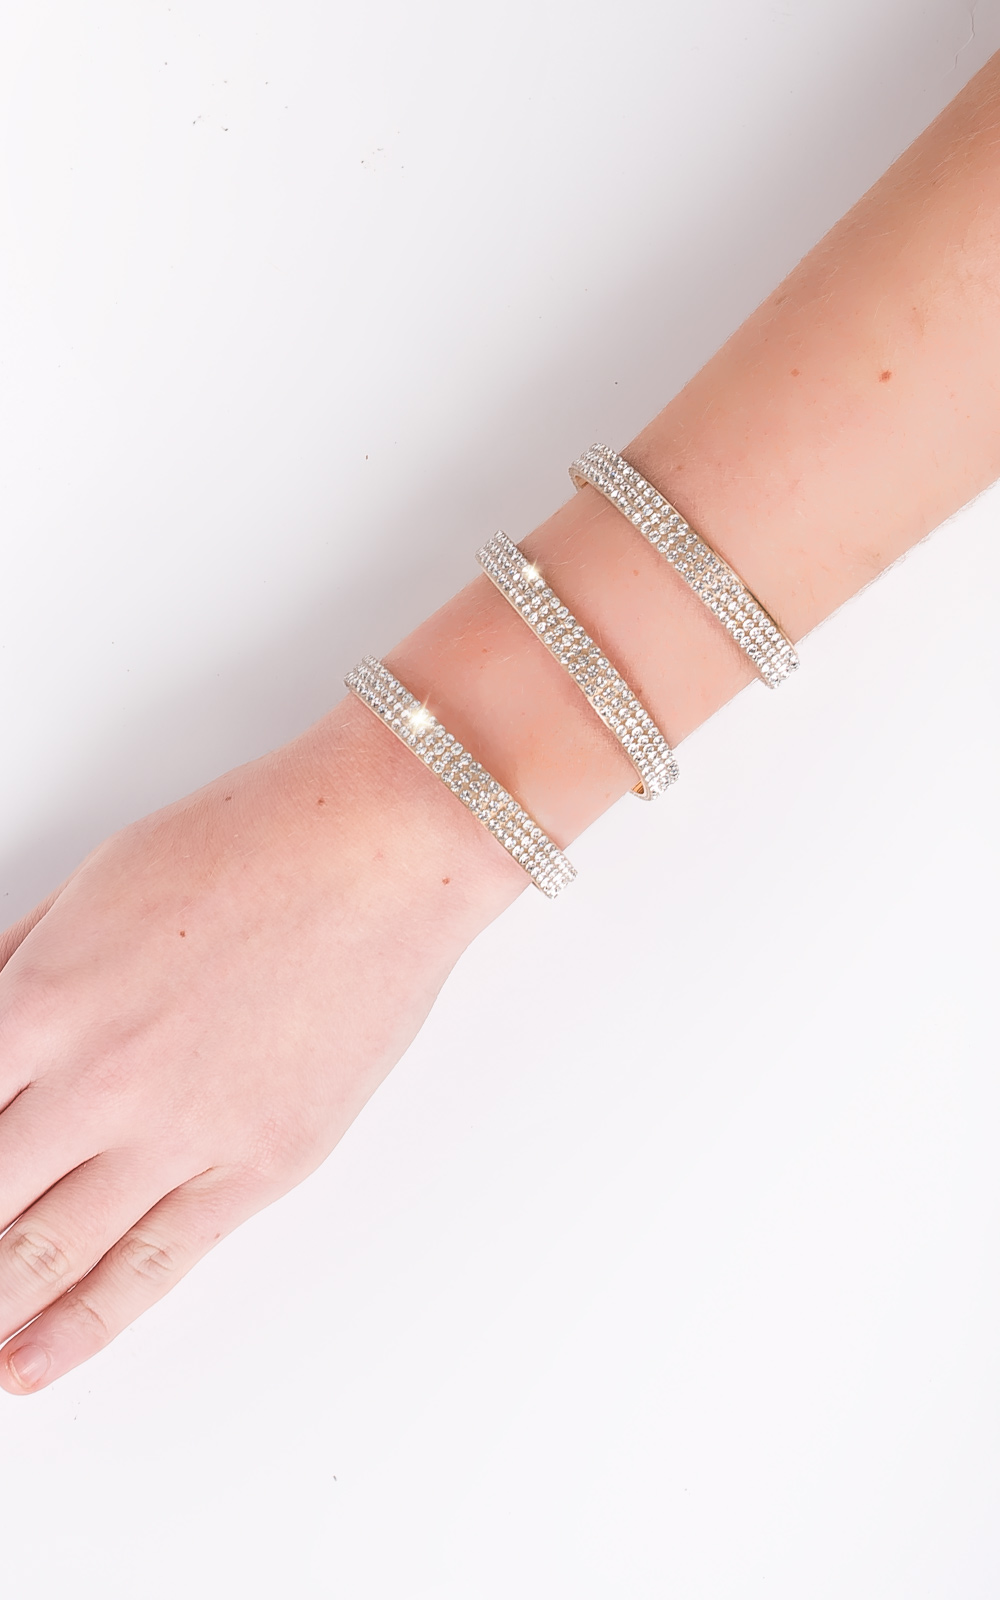 IKRUSH Womens Zoey Diamante Cuff This arm cuff is to die for! It features separate gold bands covered in diamantes. Pair this beaut with a bodycon dress for an amaze glam look!